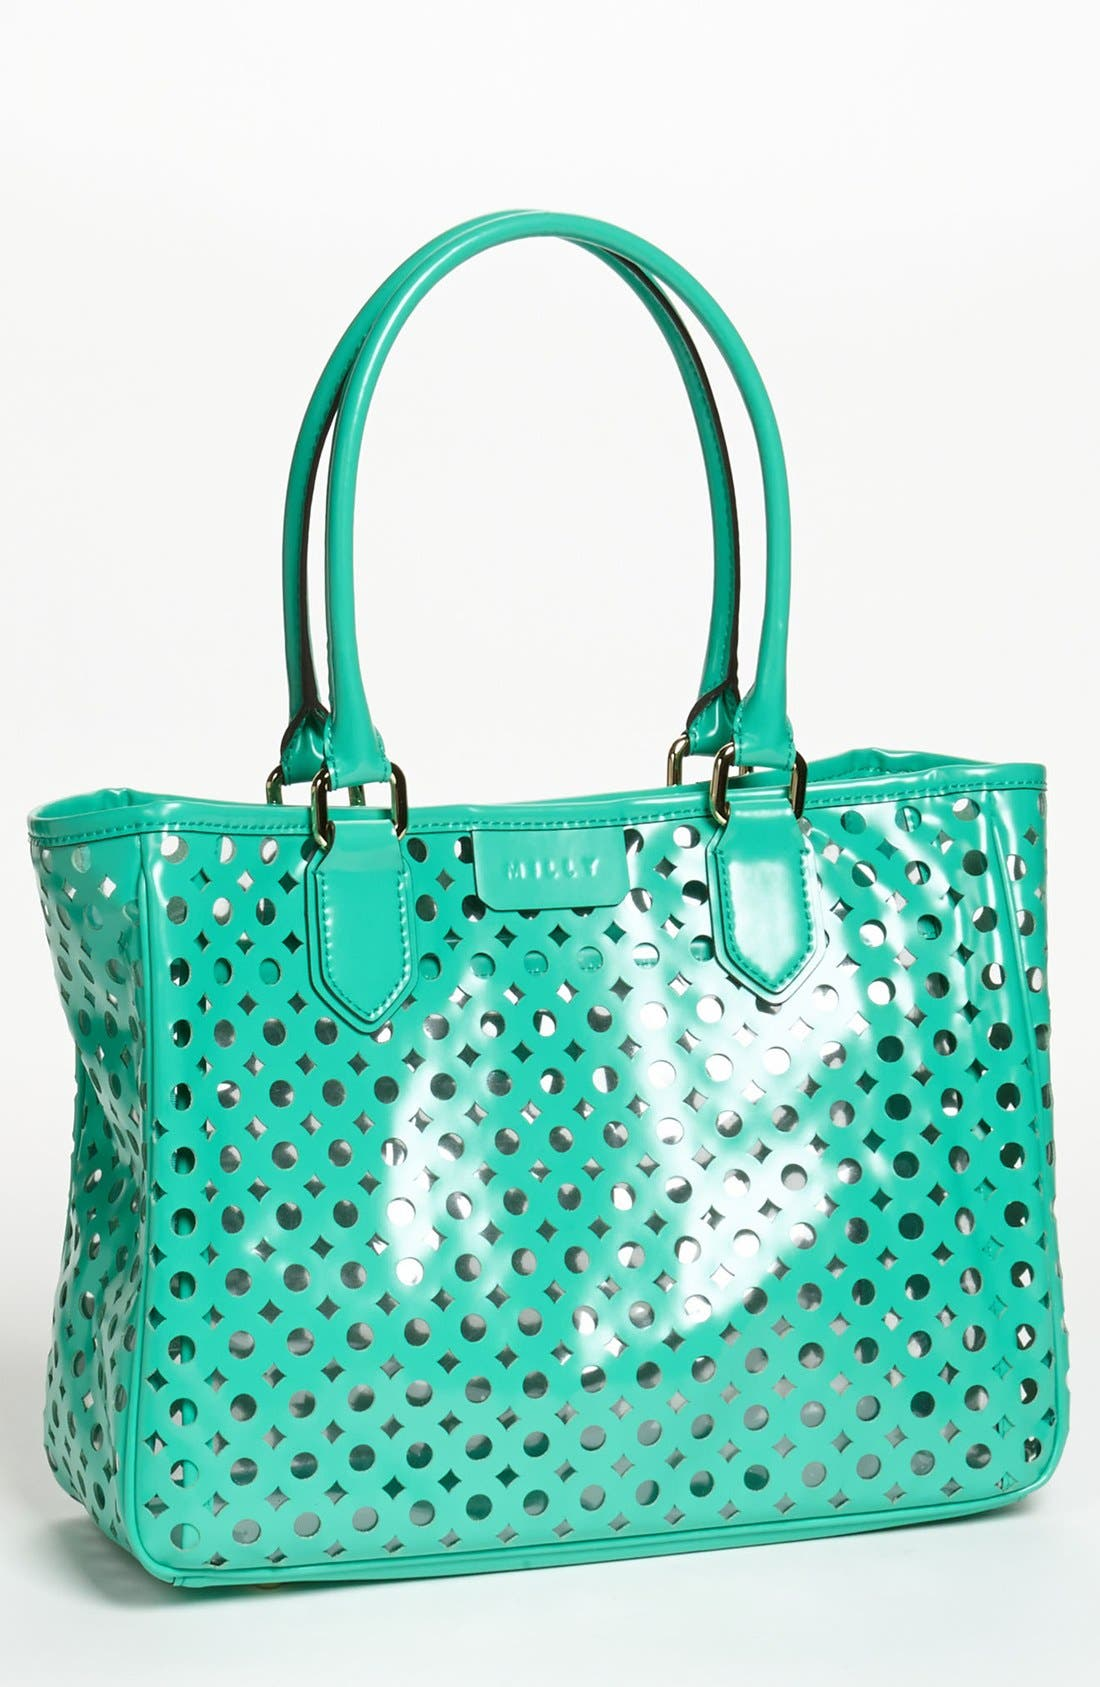 Main Image - Milly 'Addison' Patent Leather Tote